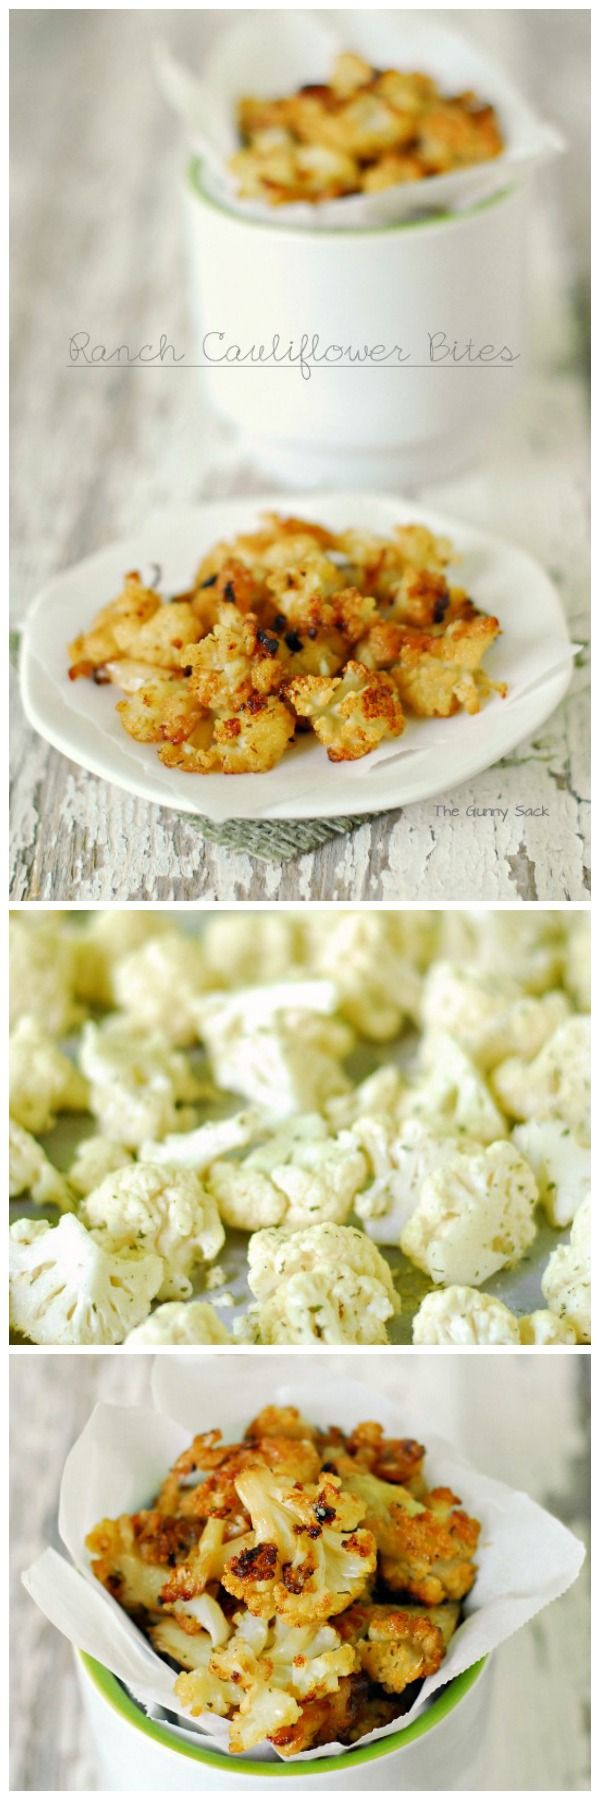 This sounds super duper yummy like eep omigosh I srsly love cauliflower when it's cooked right~ .//w//.